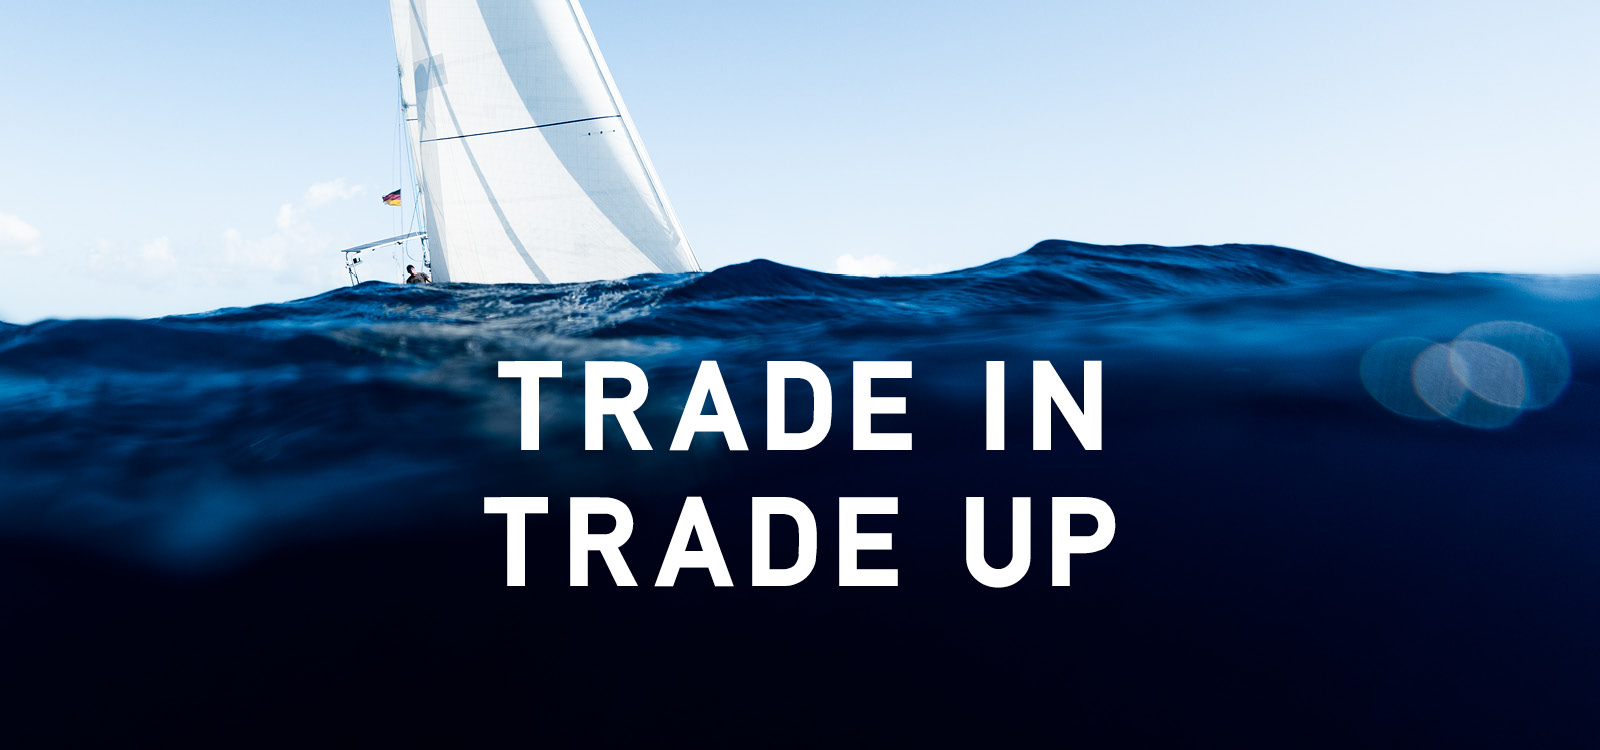 sail trade in